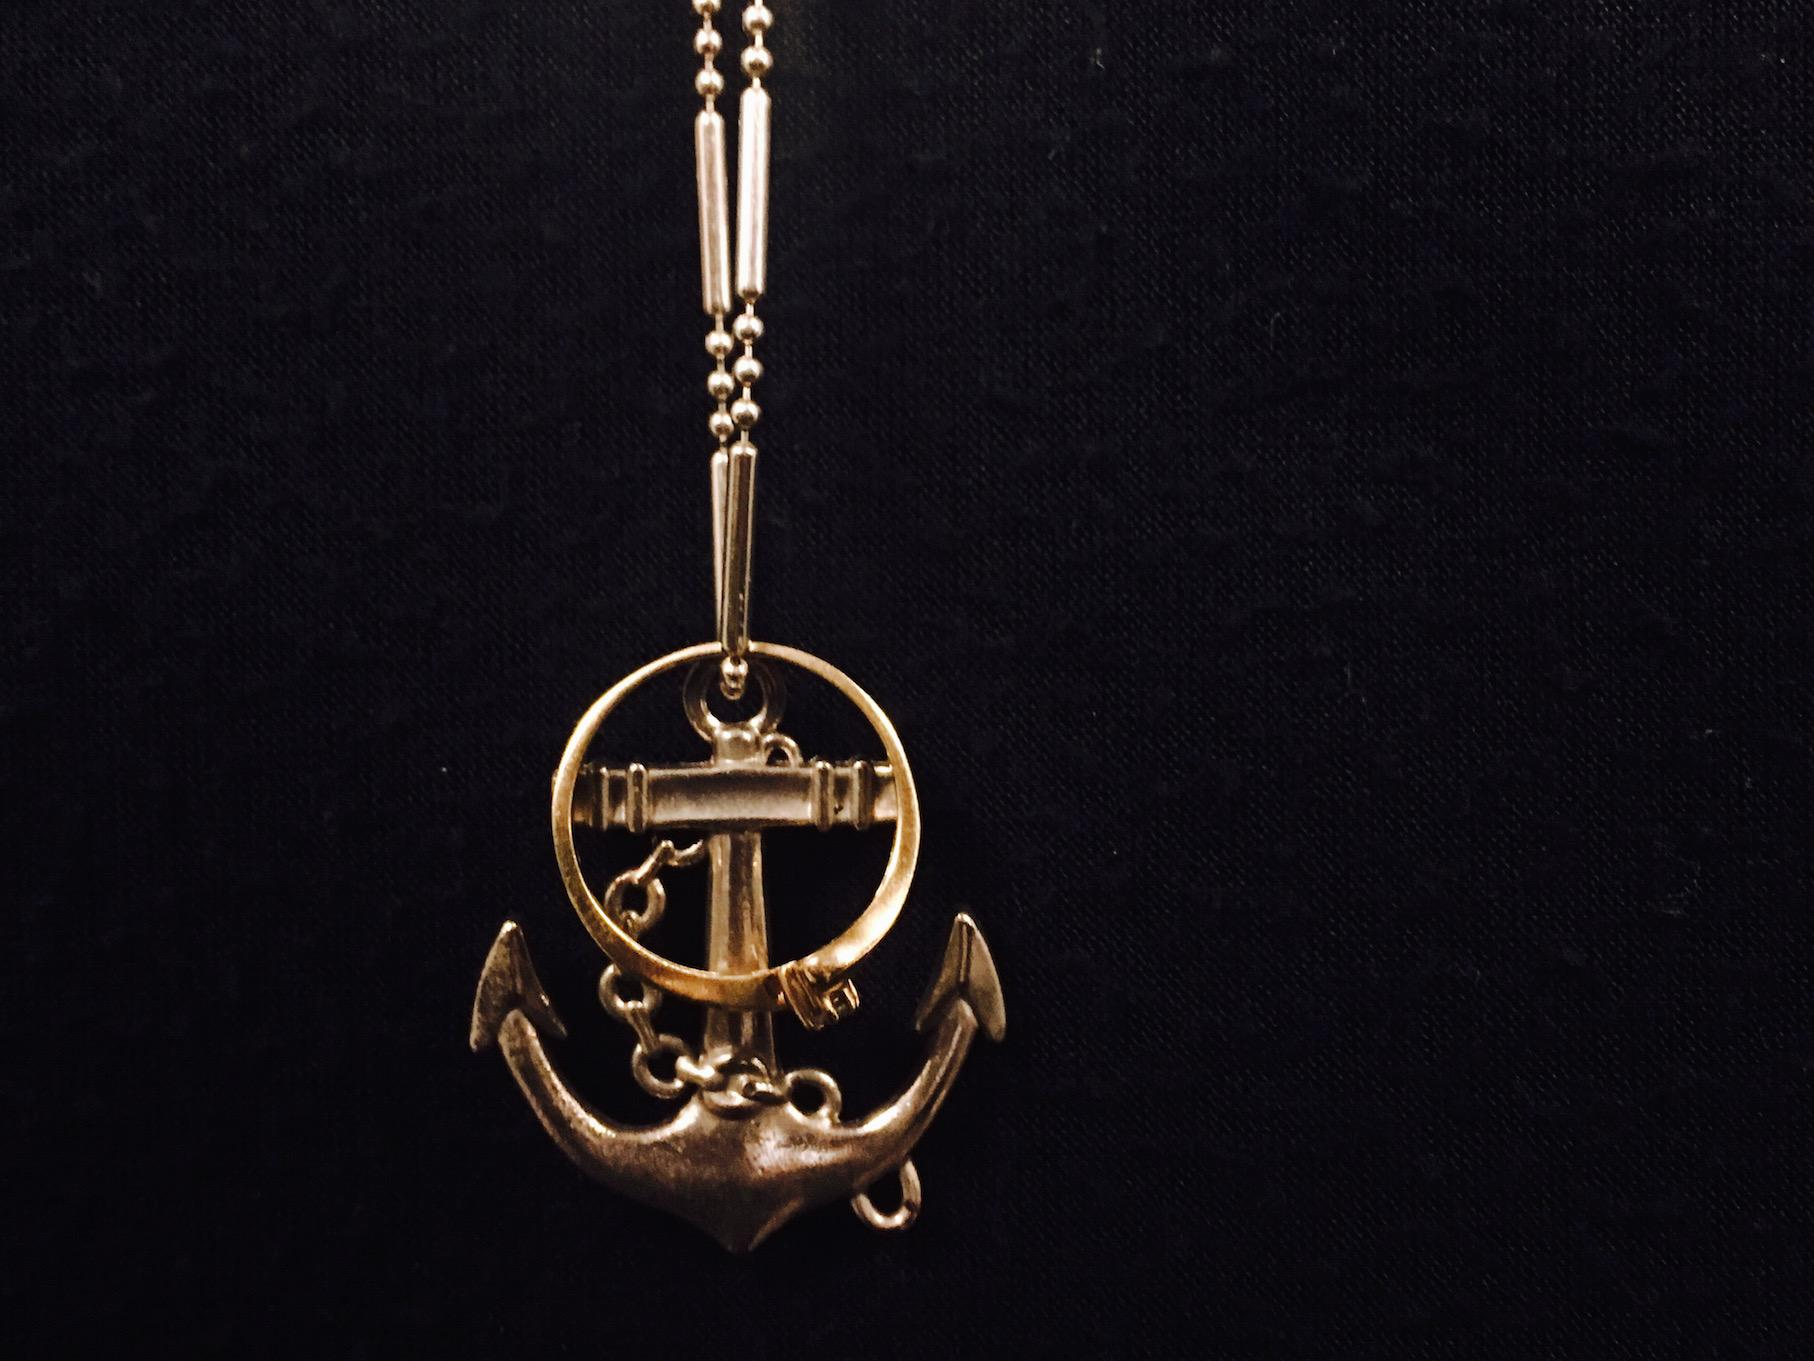 Danielle's anchored-ring necklace.